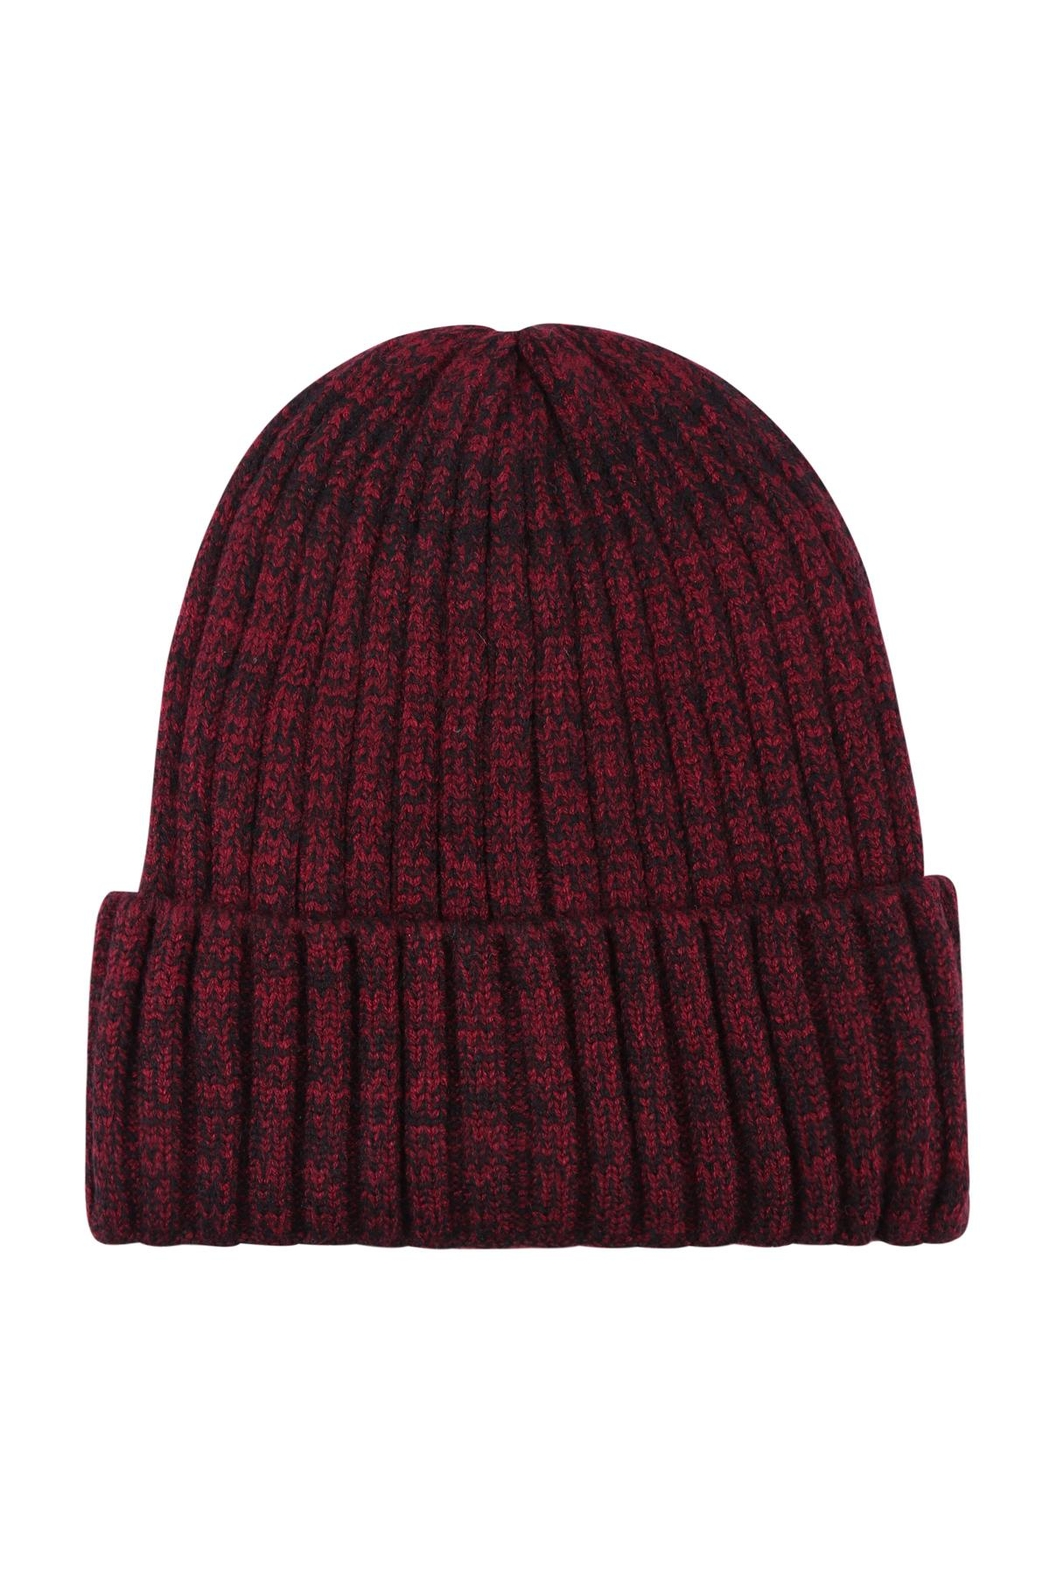 Riah Fashion Plain-Knitted-Beanie - Front Cropped Image